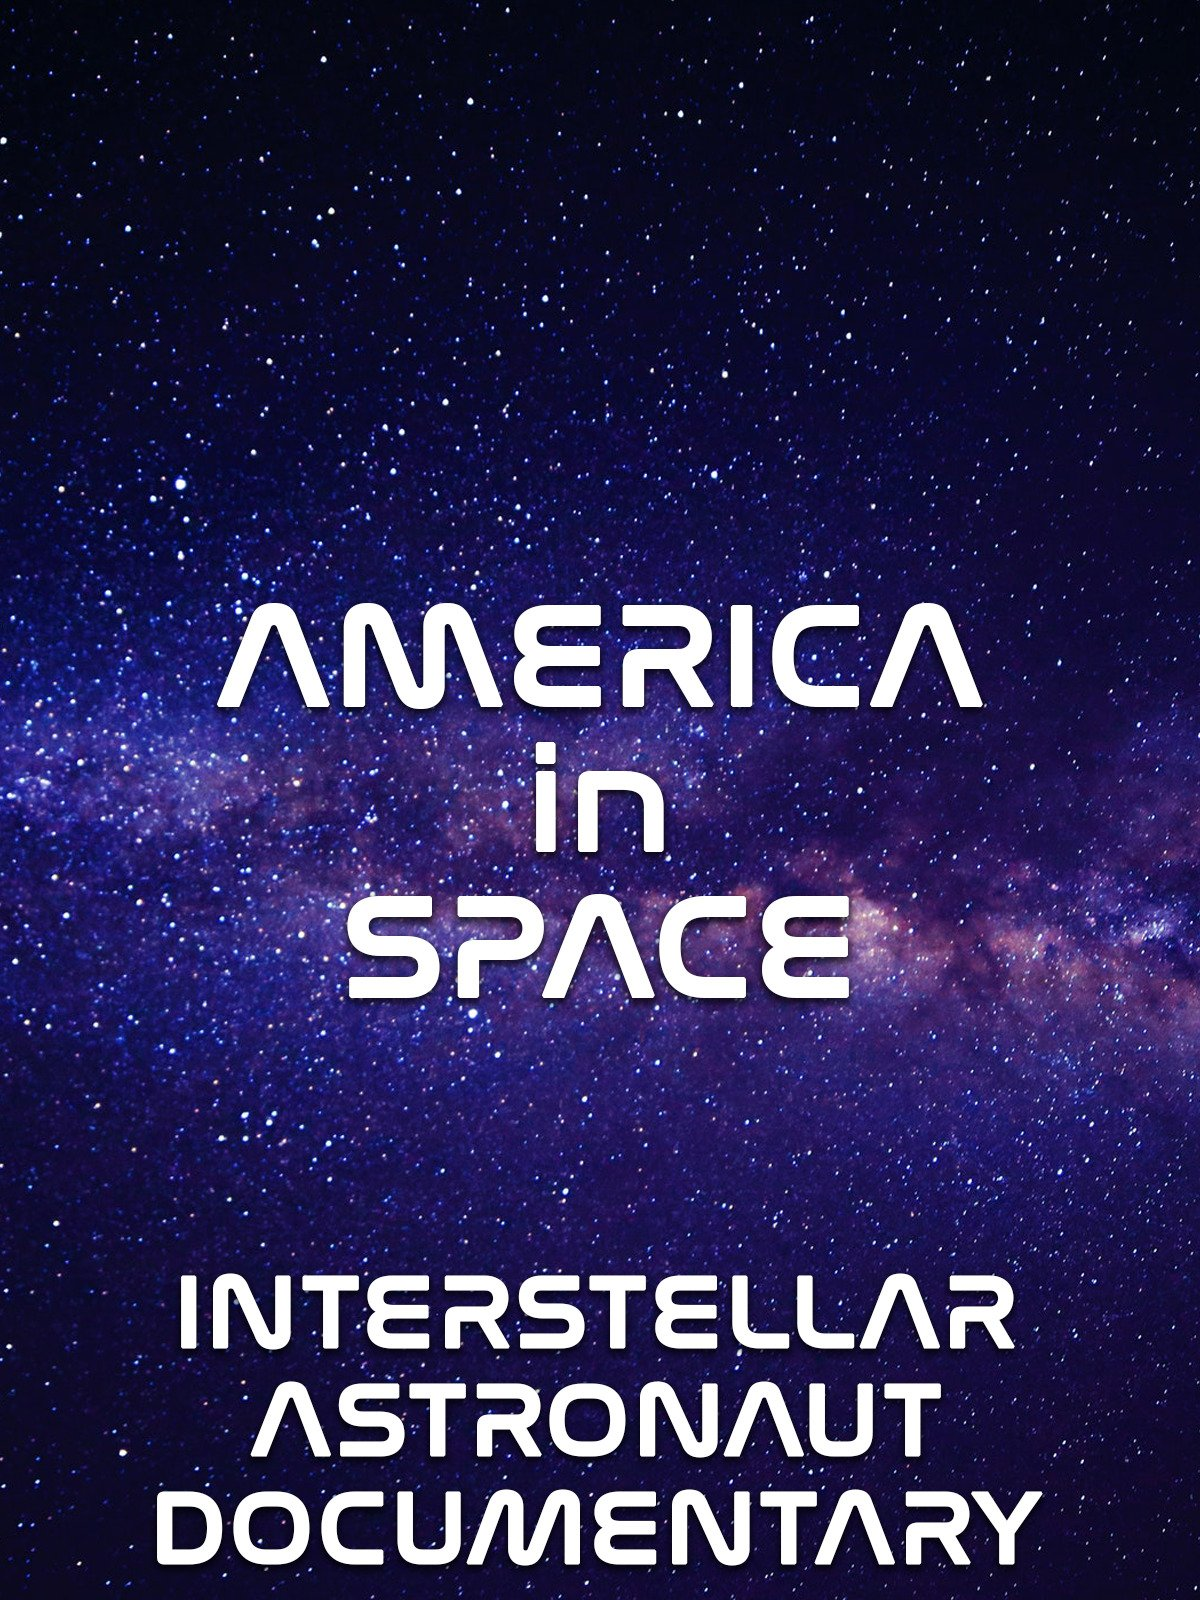 America in Space: Interstellar Astronaut Documentary